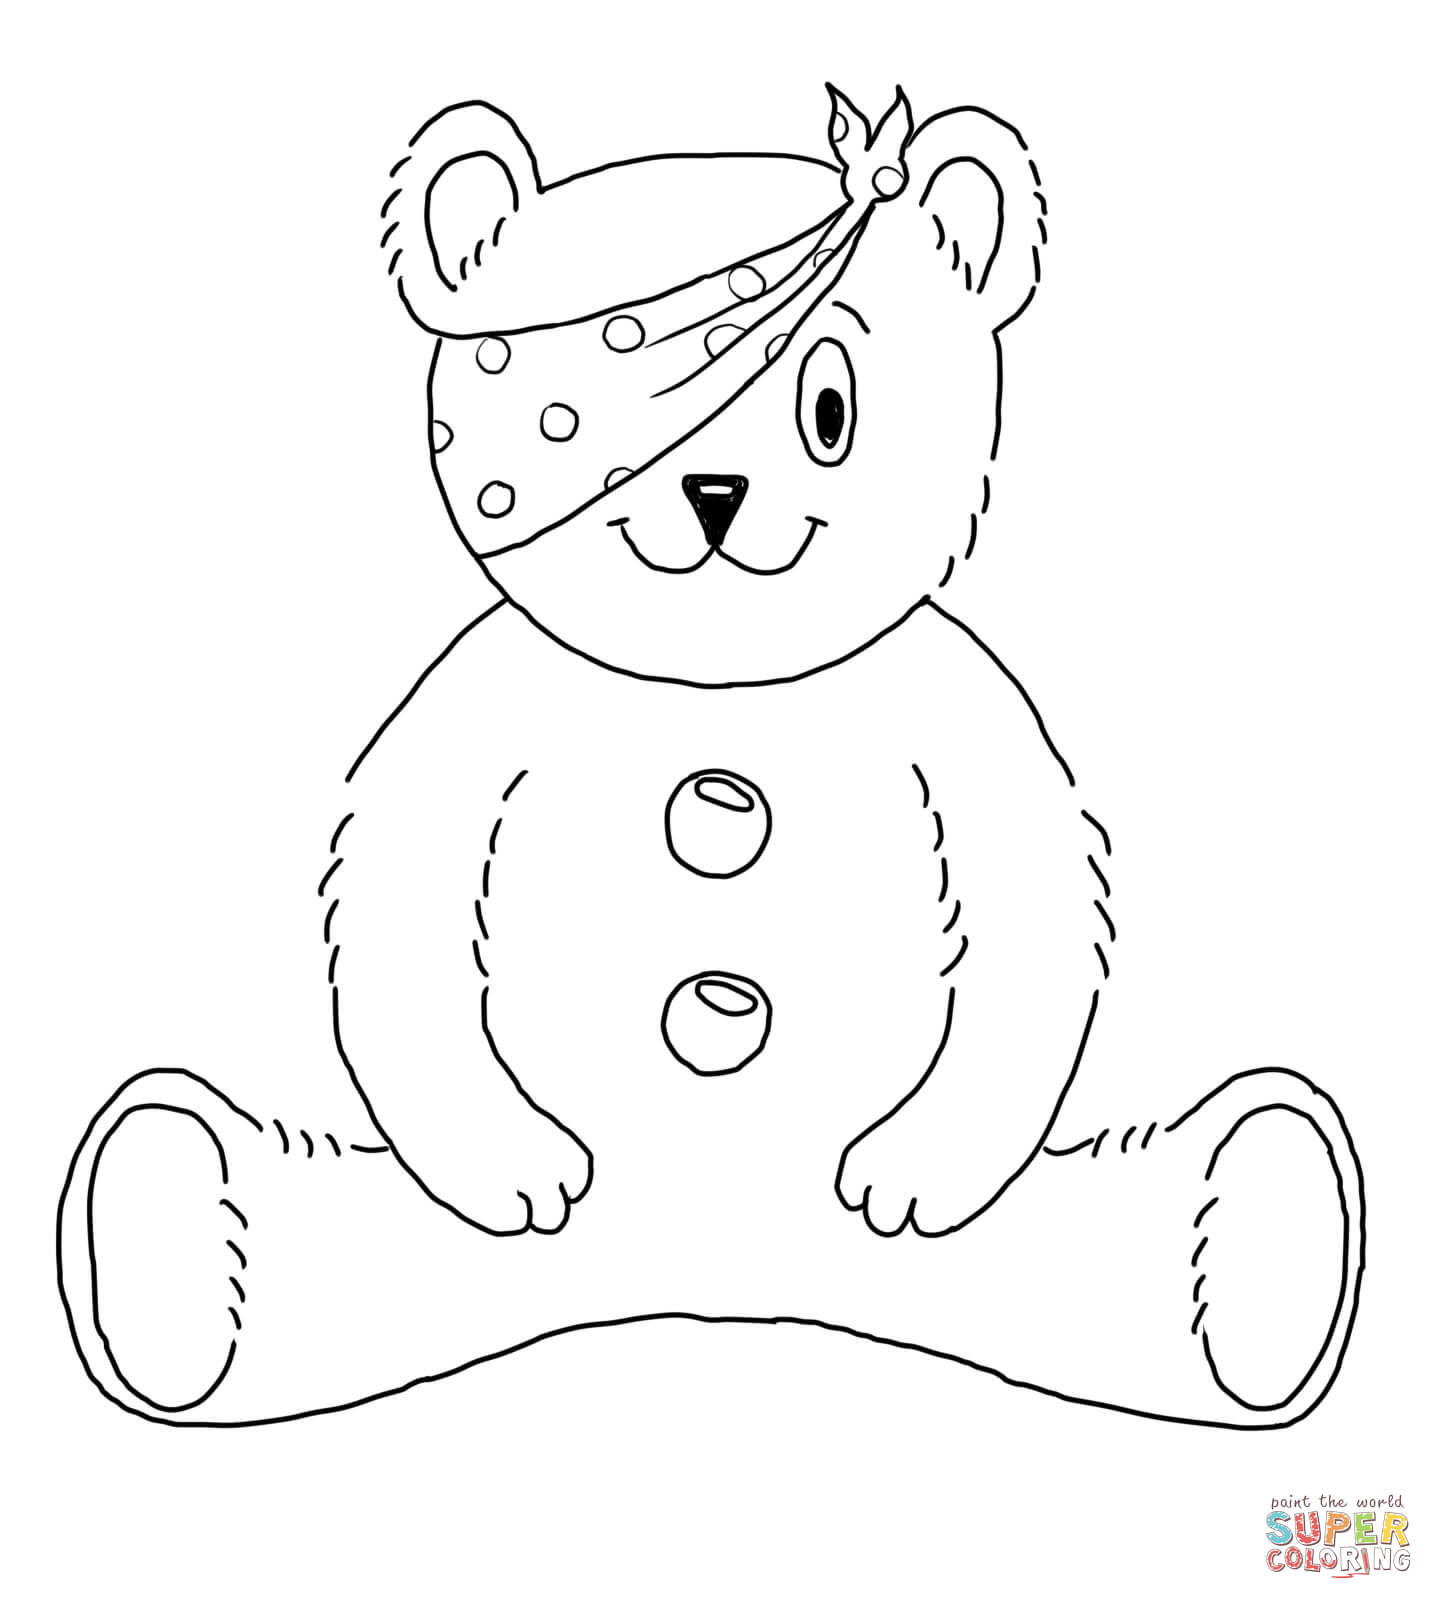 pudsey bear colouring in pudsey bear colouring template bear coloring pages colouring pudsey bear in